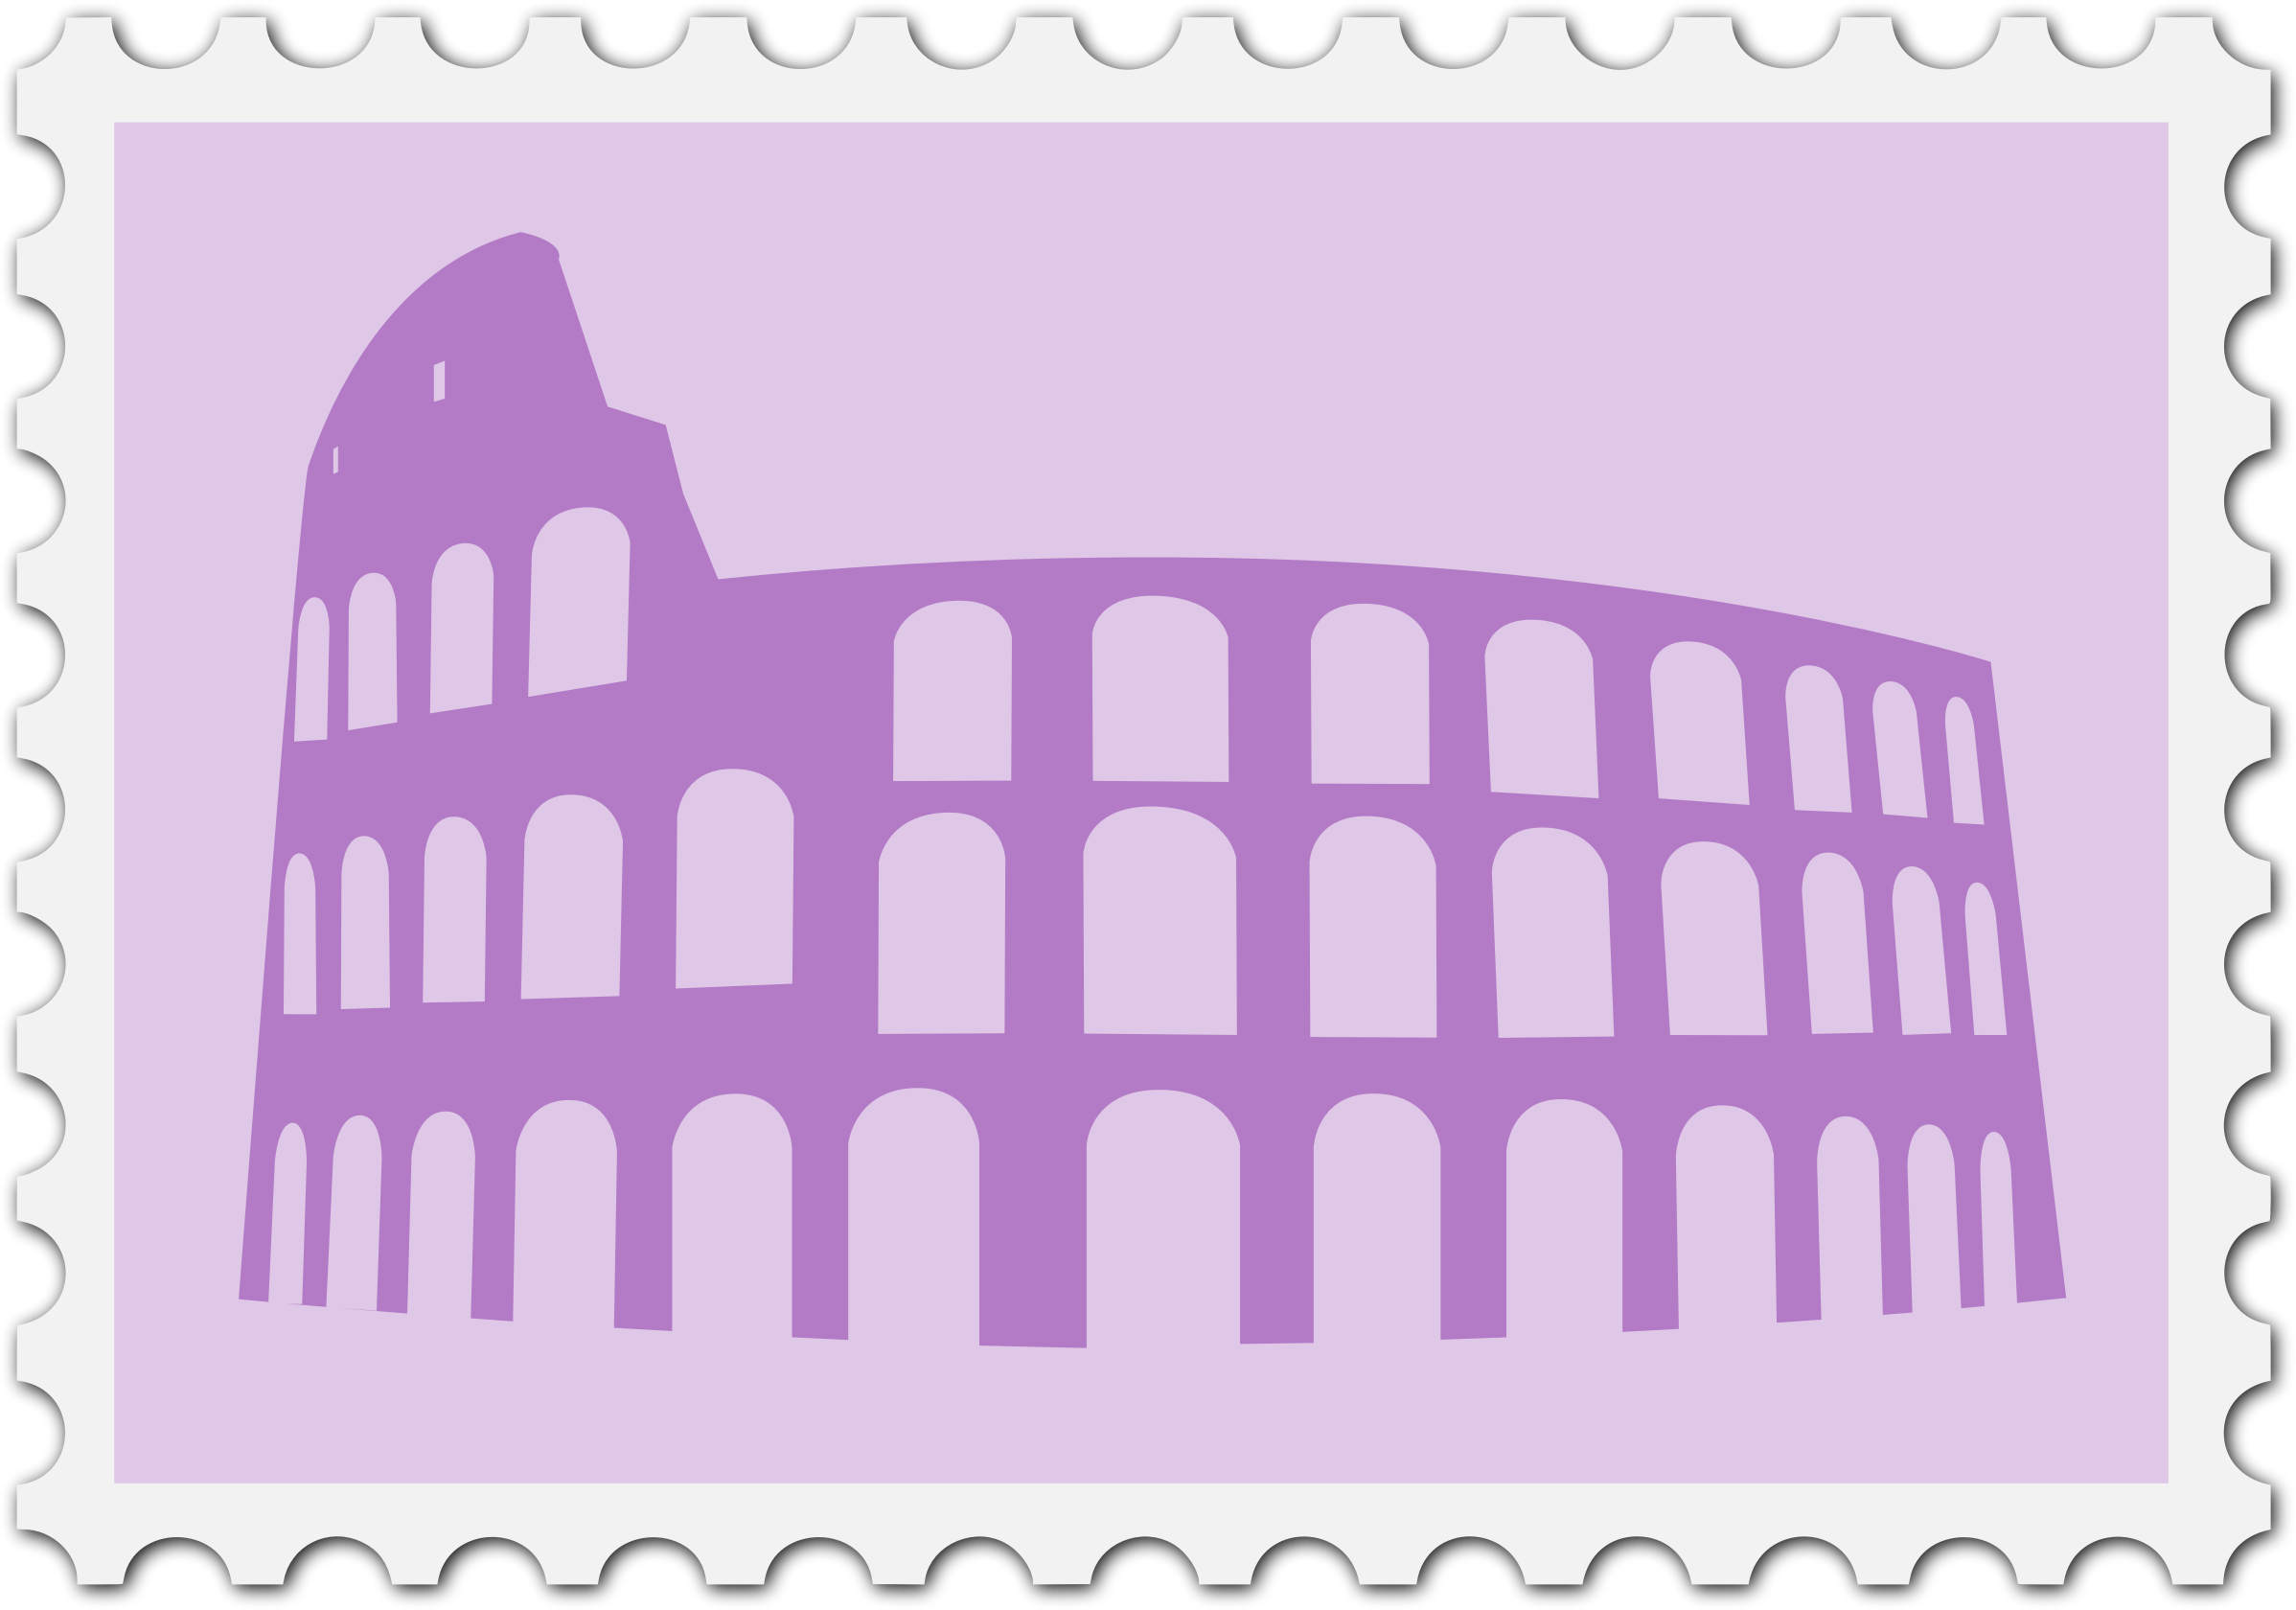 Italian stamp by Firkin